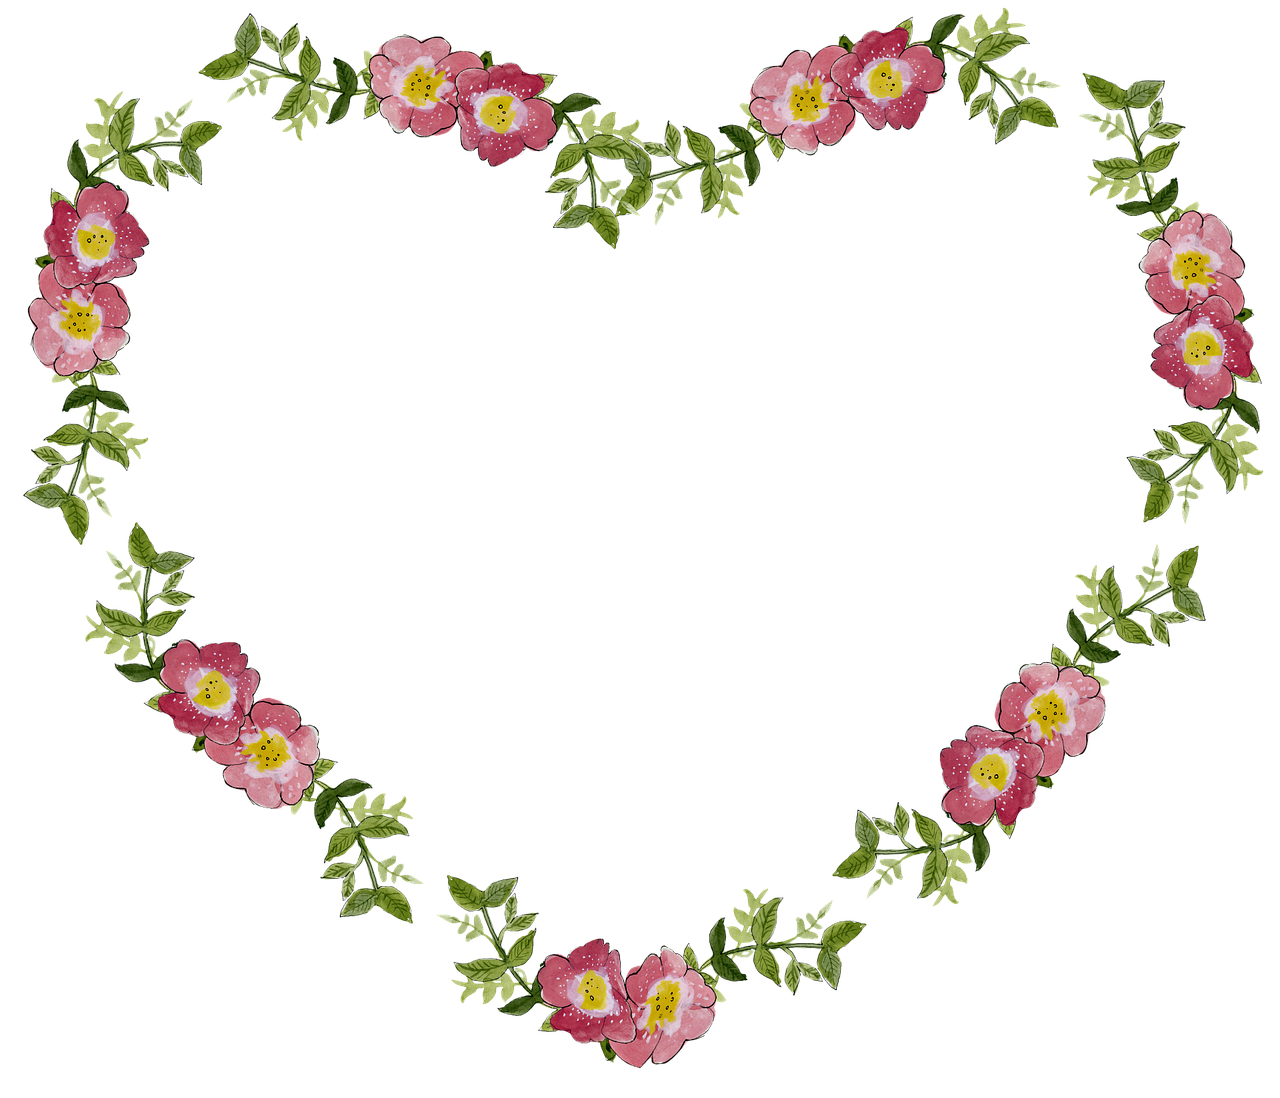 Clipart hearts flower. Free image on pixabay